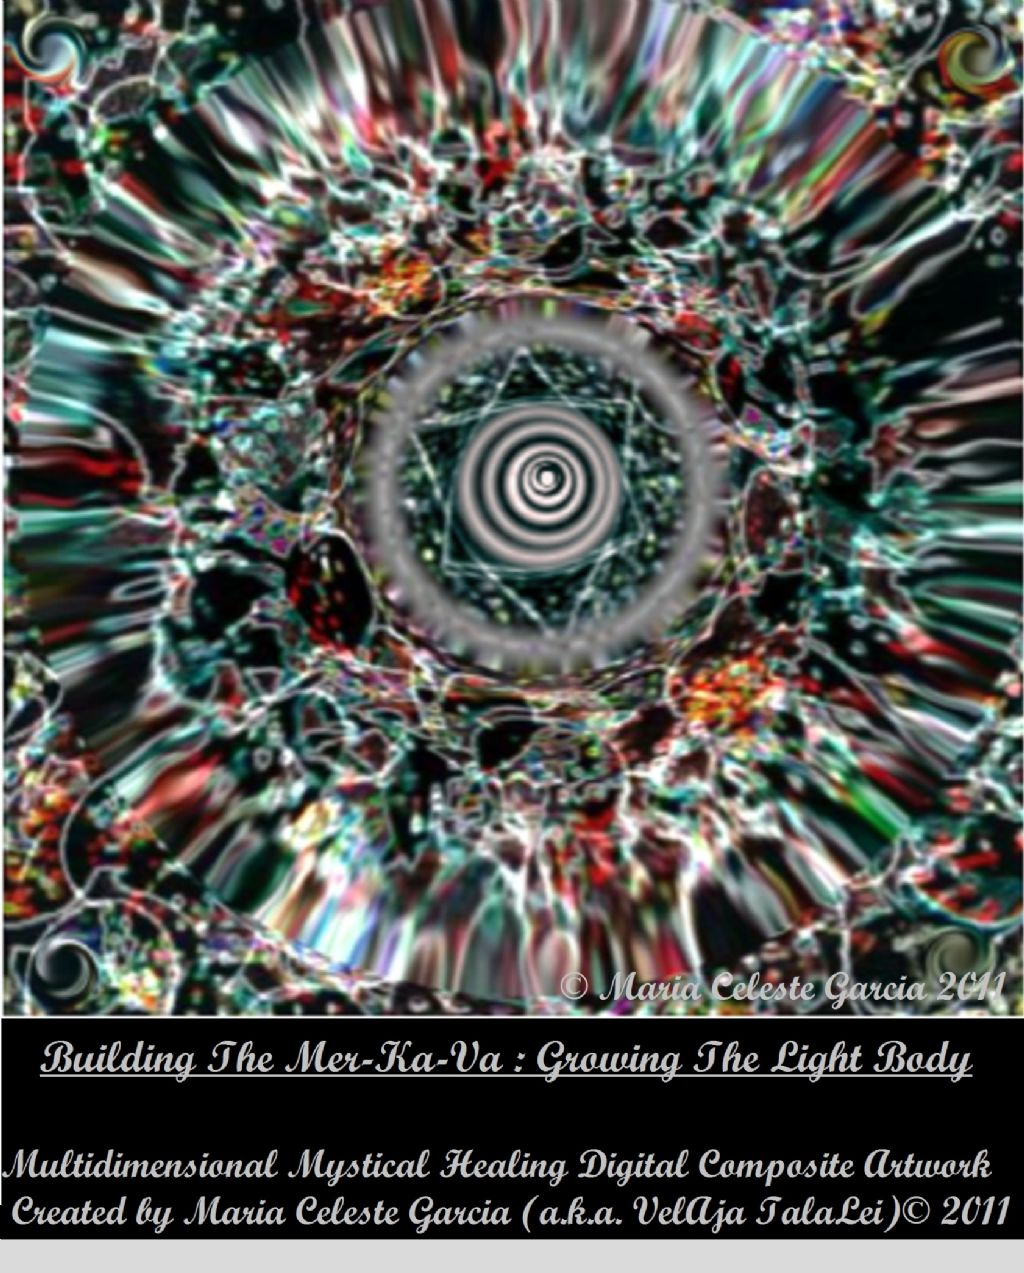 Building the Mer-ka-va: Building the Light Body